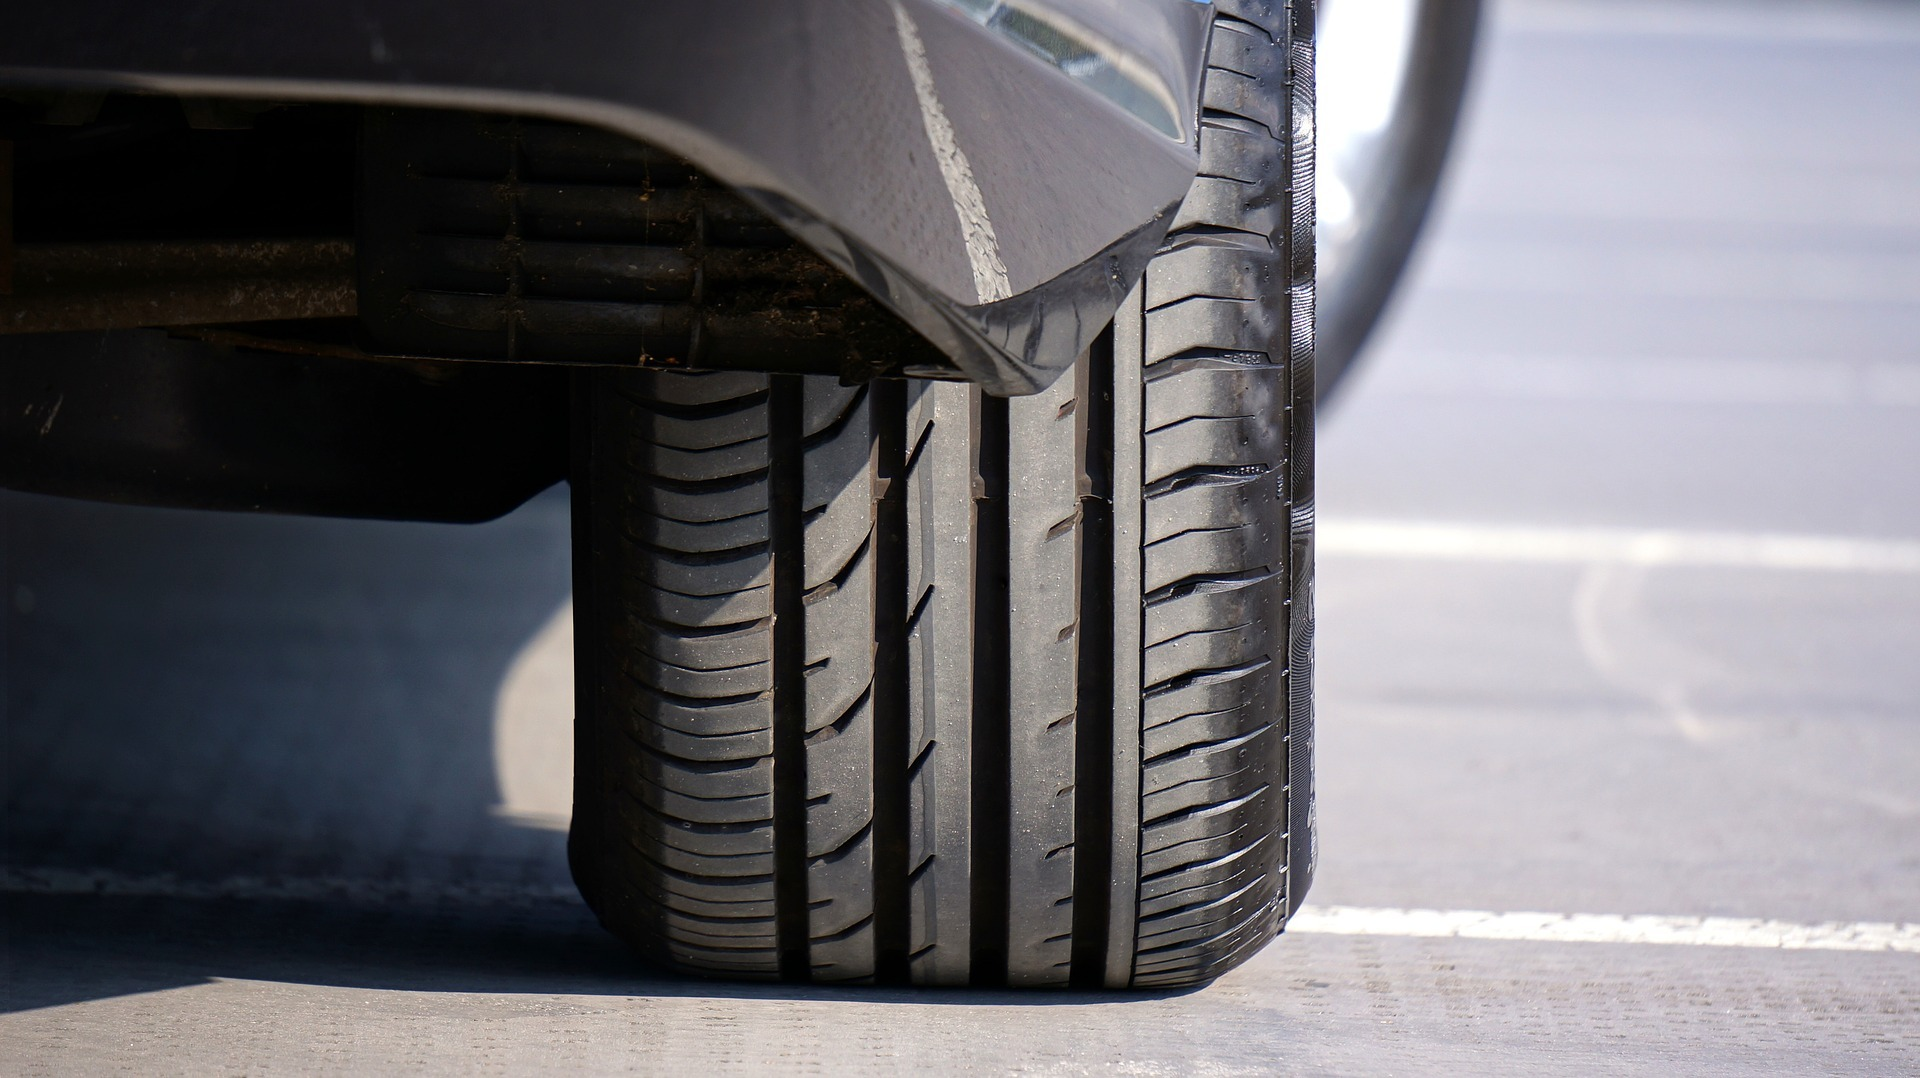 Police in Guisborough have recently dealt with eight incidents whereby car tyres were damaged in Skelton.